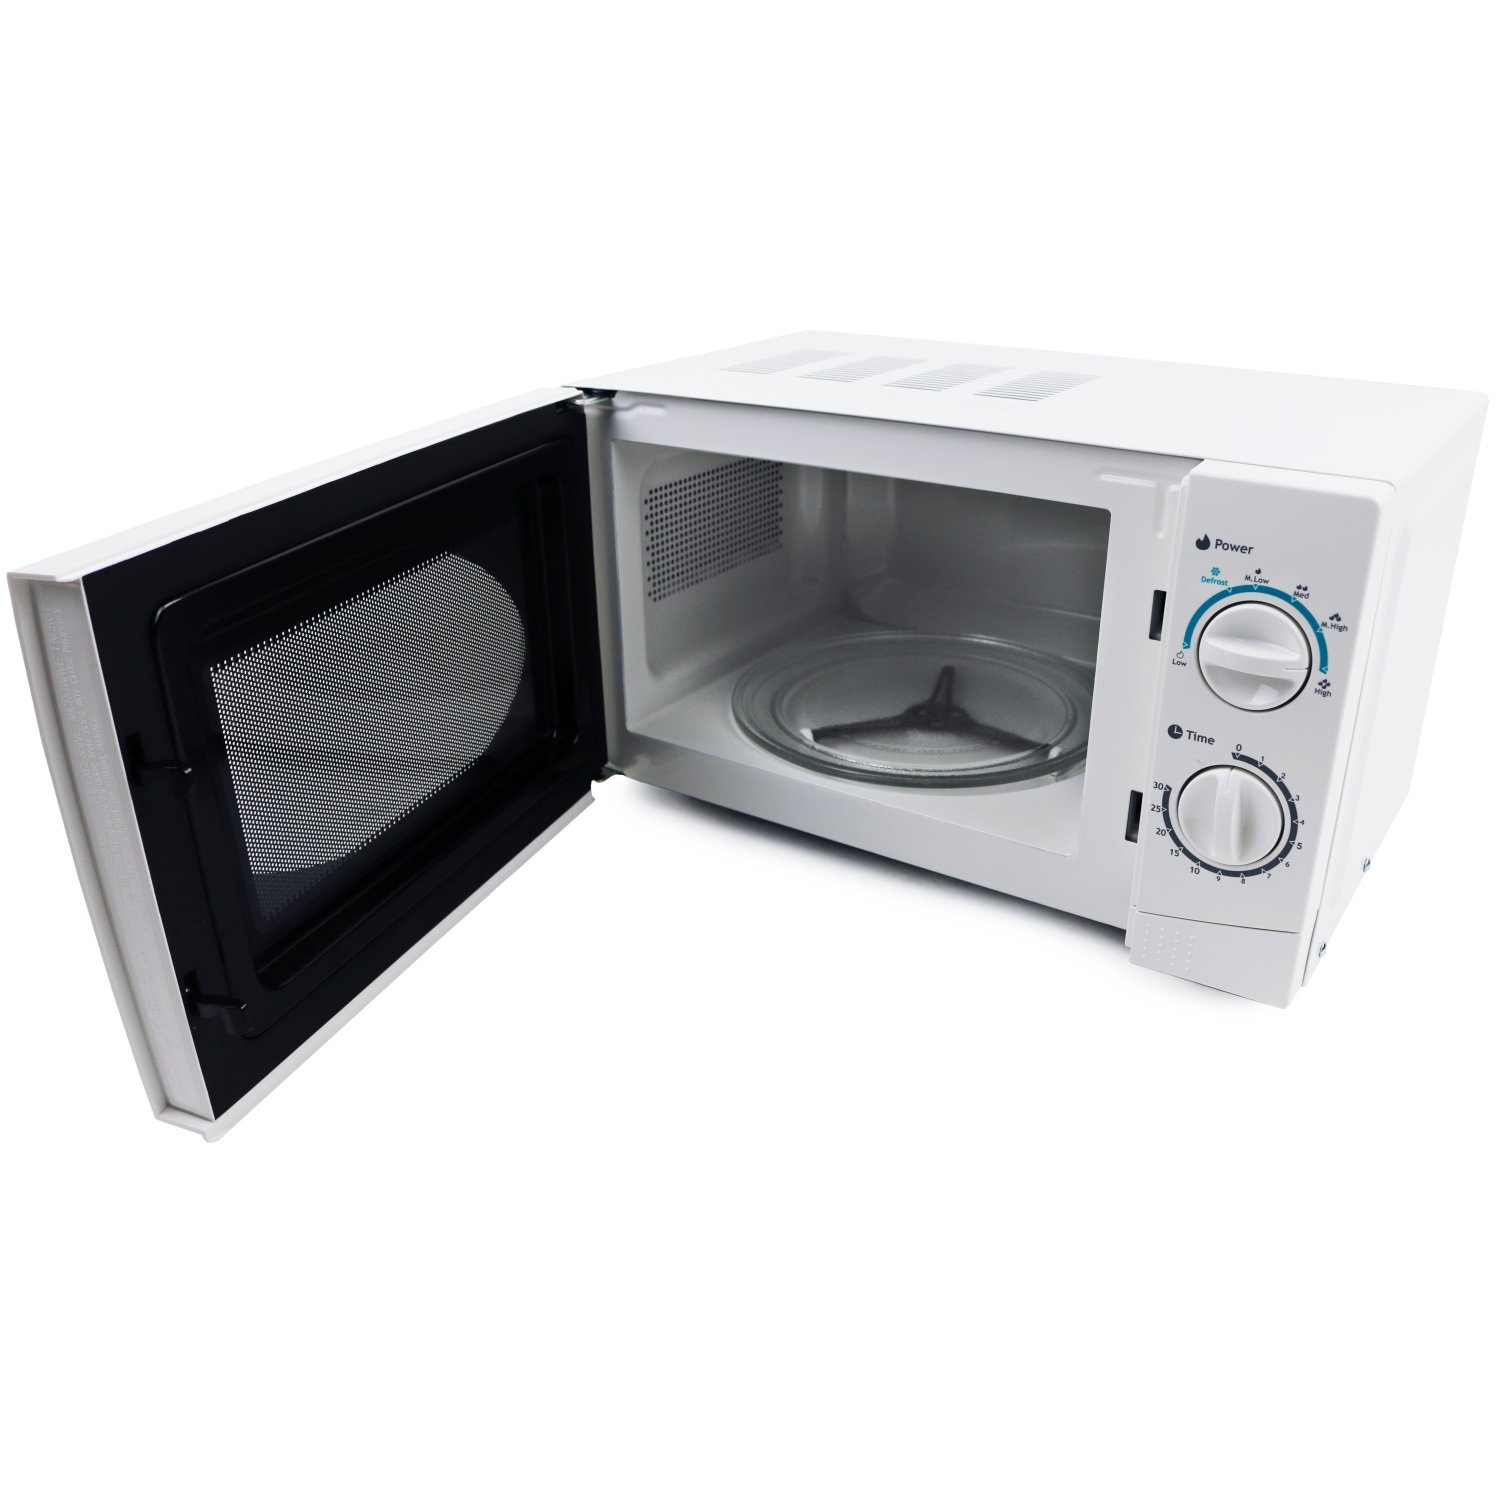 Compact microwave bestmicrowave for Small built in microwave oven